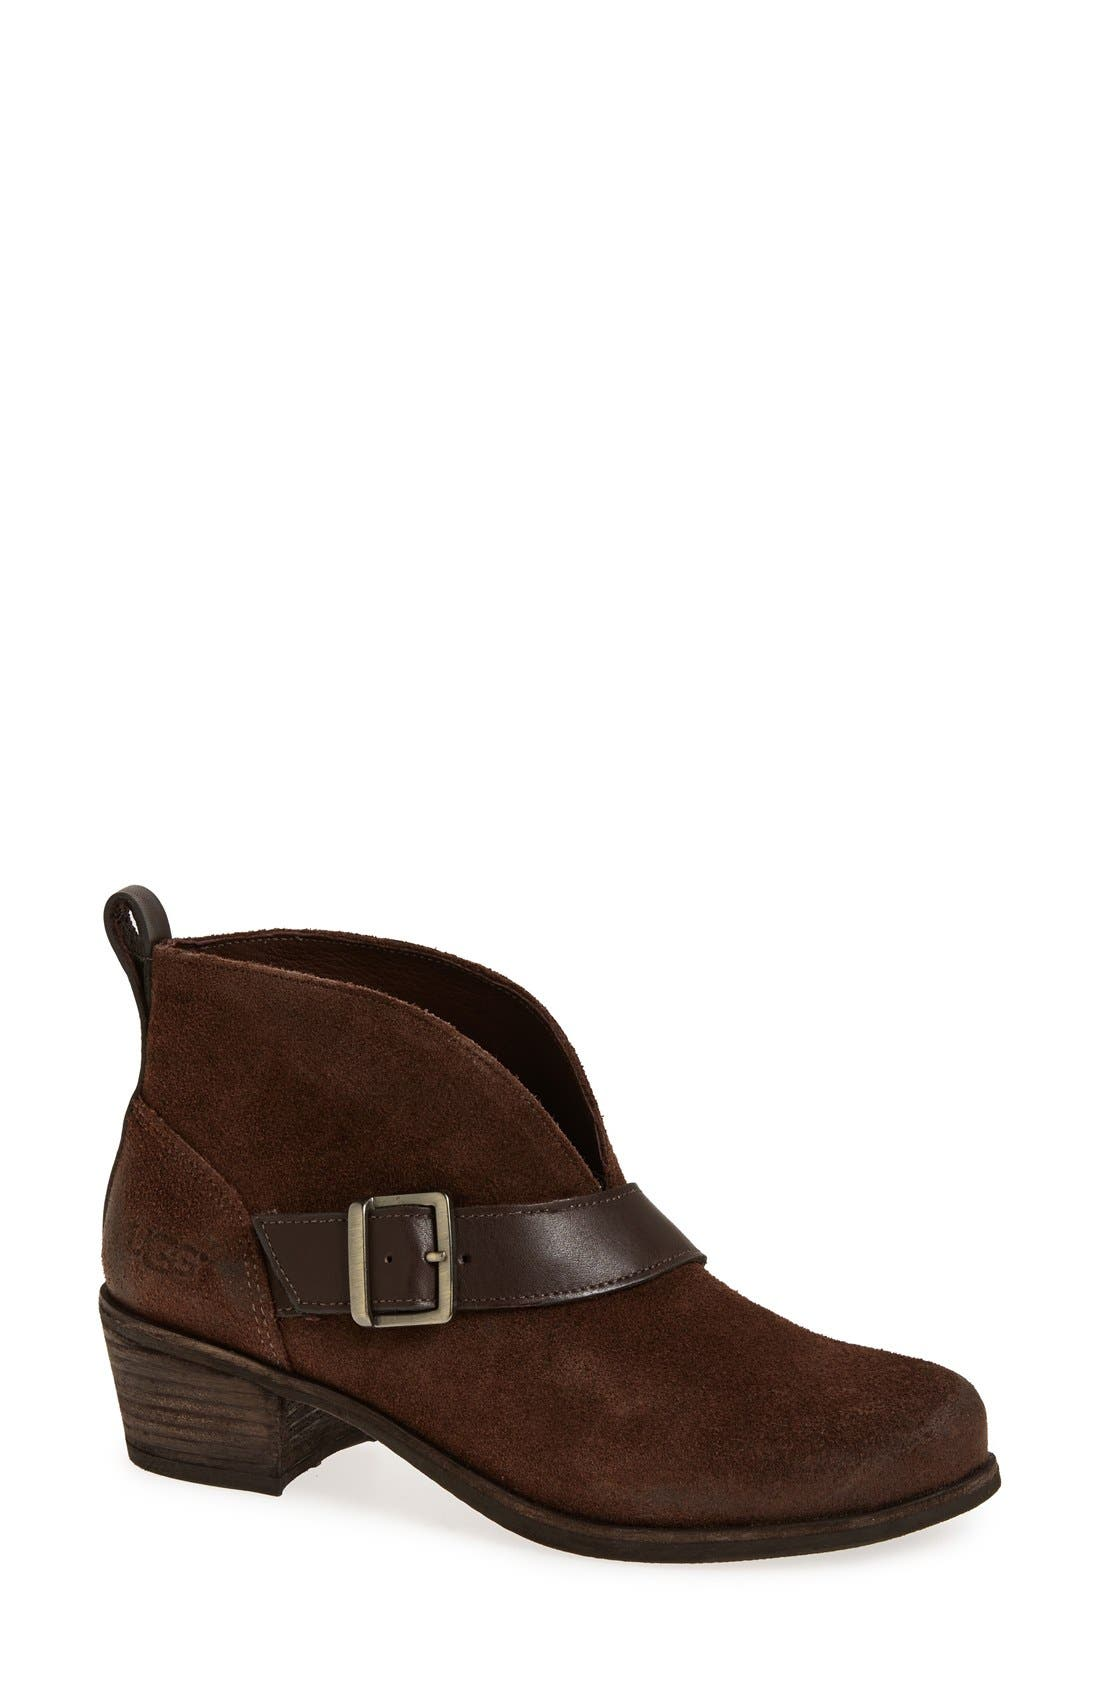 Main Image - UGG® 'Wright - Belted' Bootie (Women)